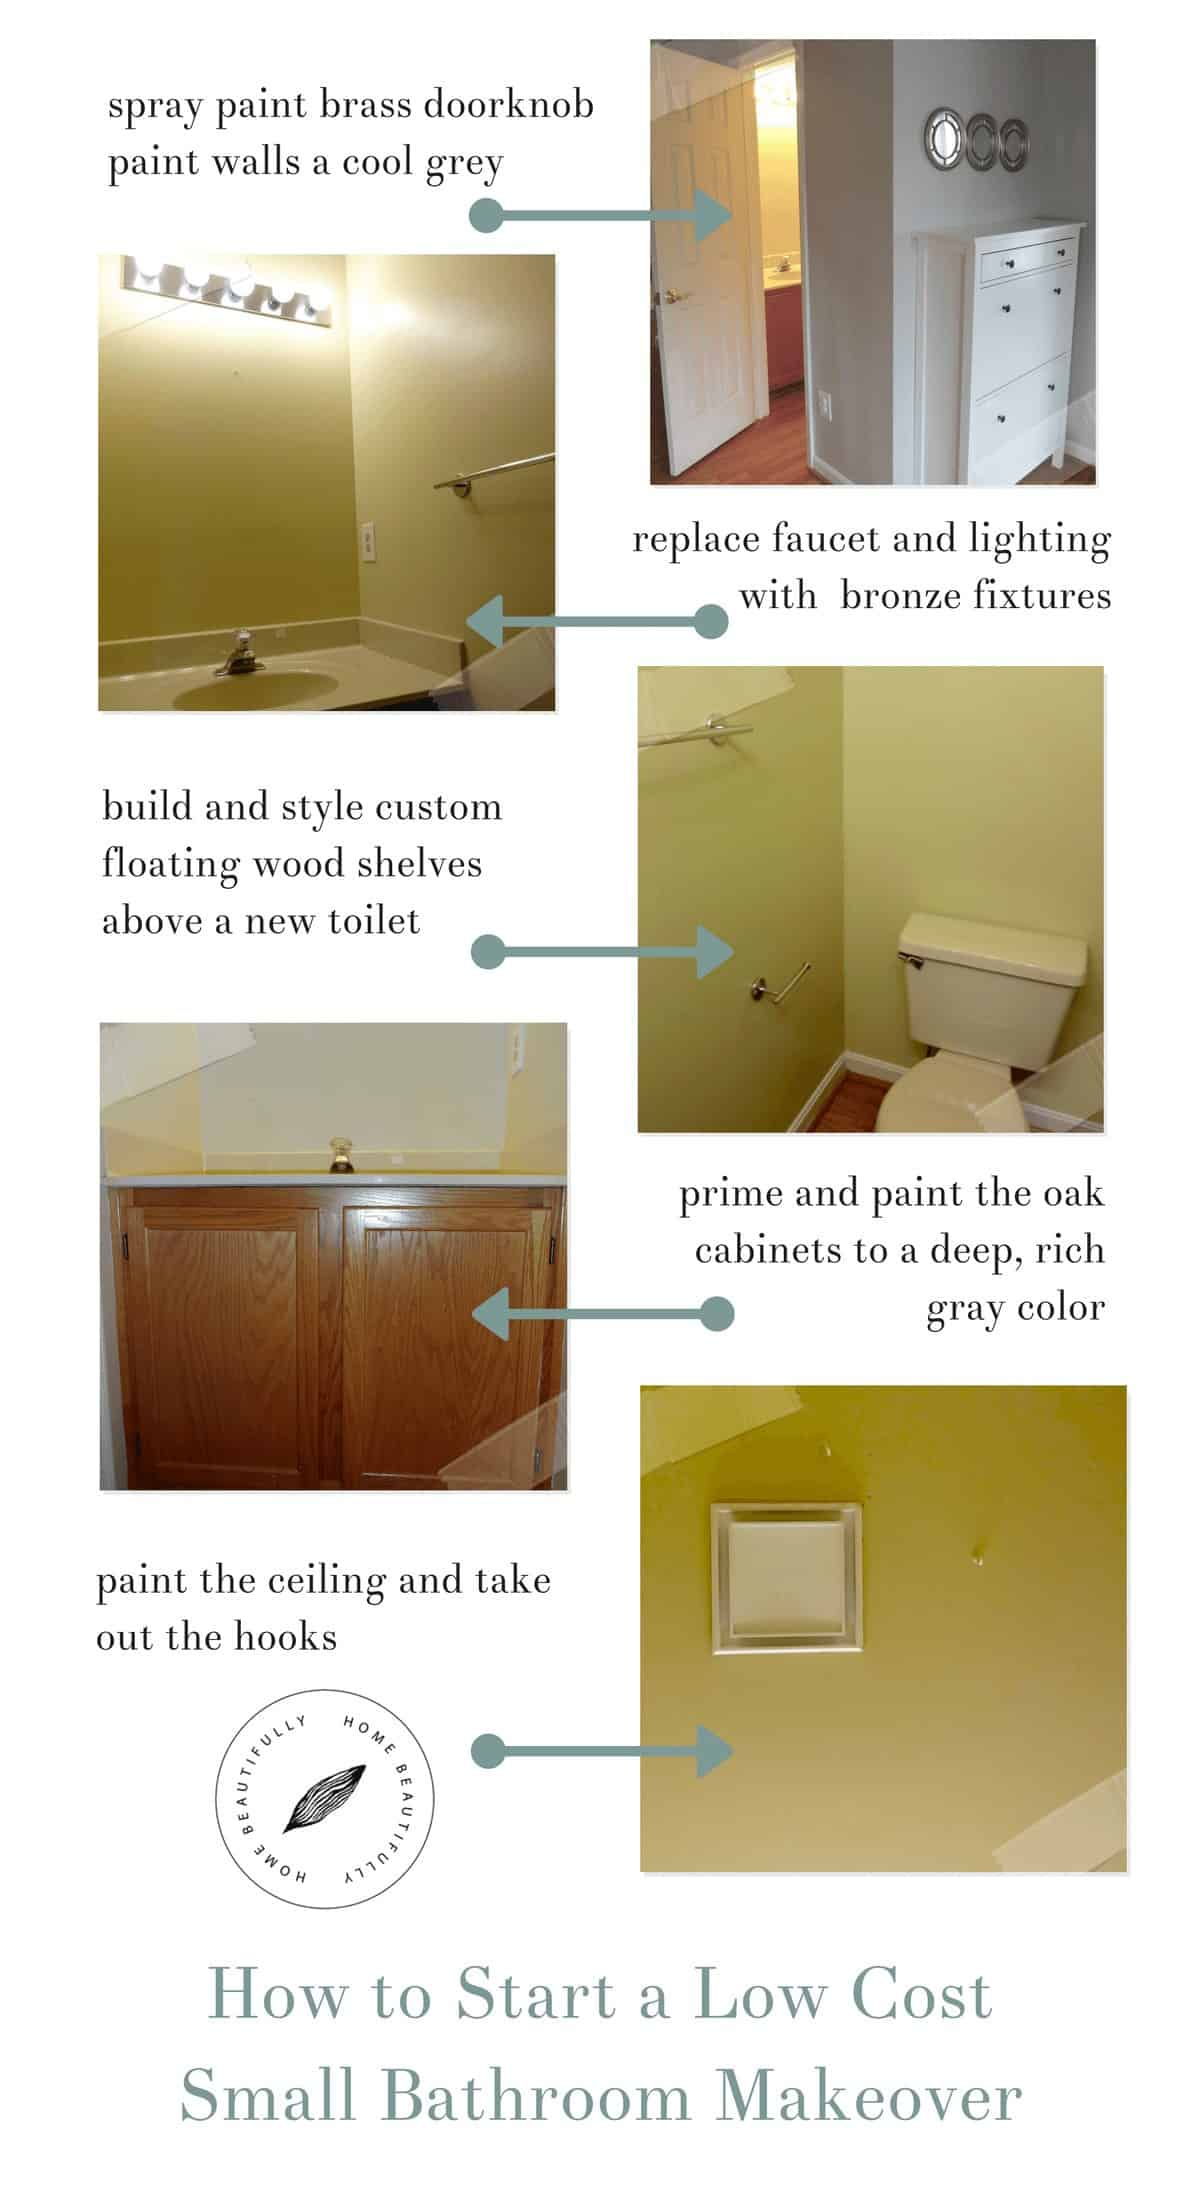 Cost To Add Small Bathroom To House: How To Start A Low Cost Small Bathroom Makeover